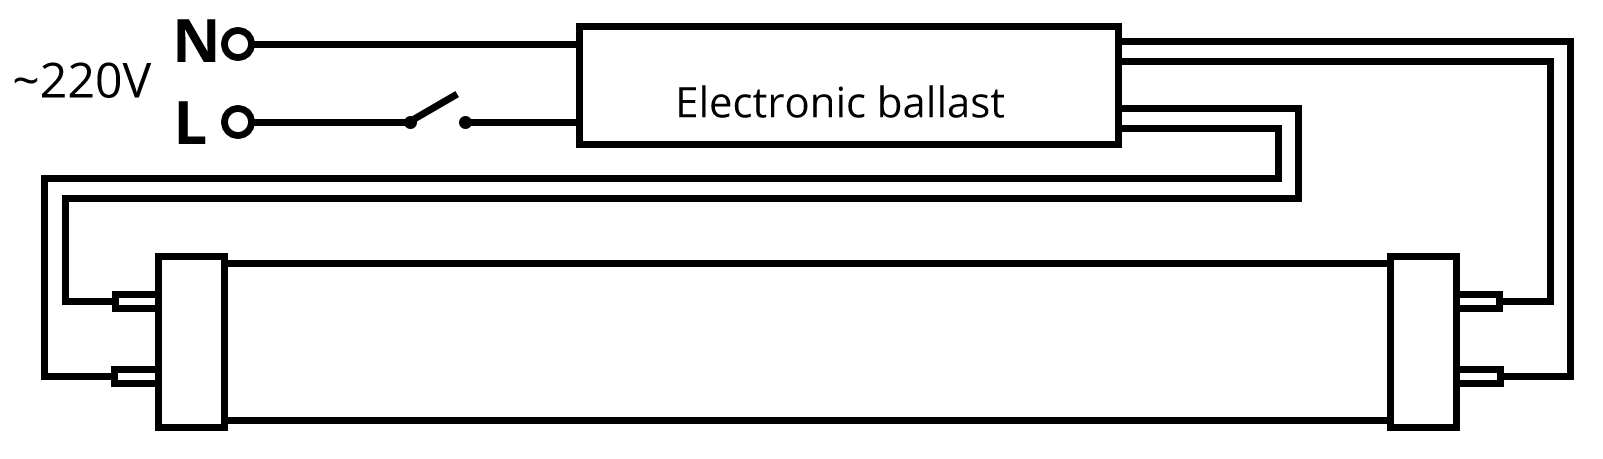 2 L T8 Ballast Wiring Diagram Fluorescent Light Wire Layout